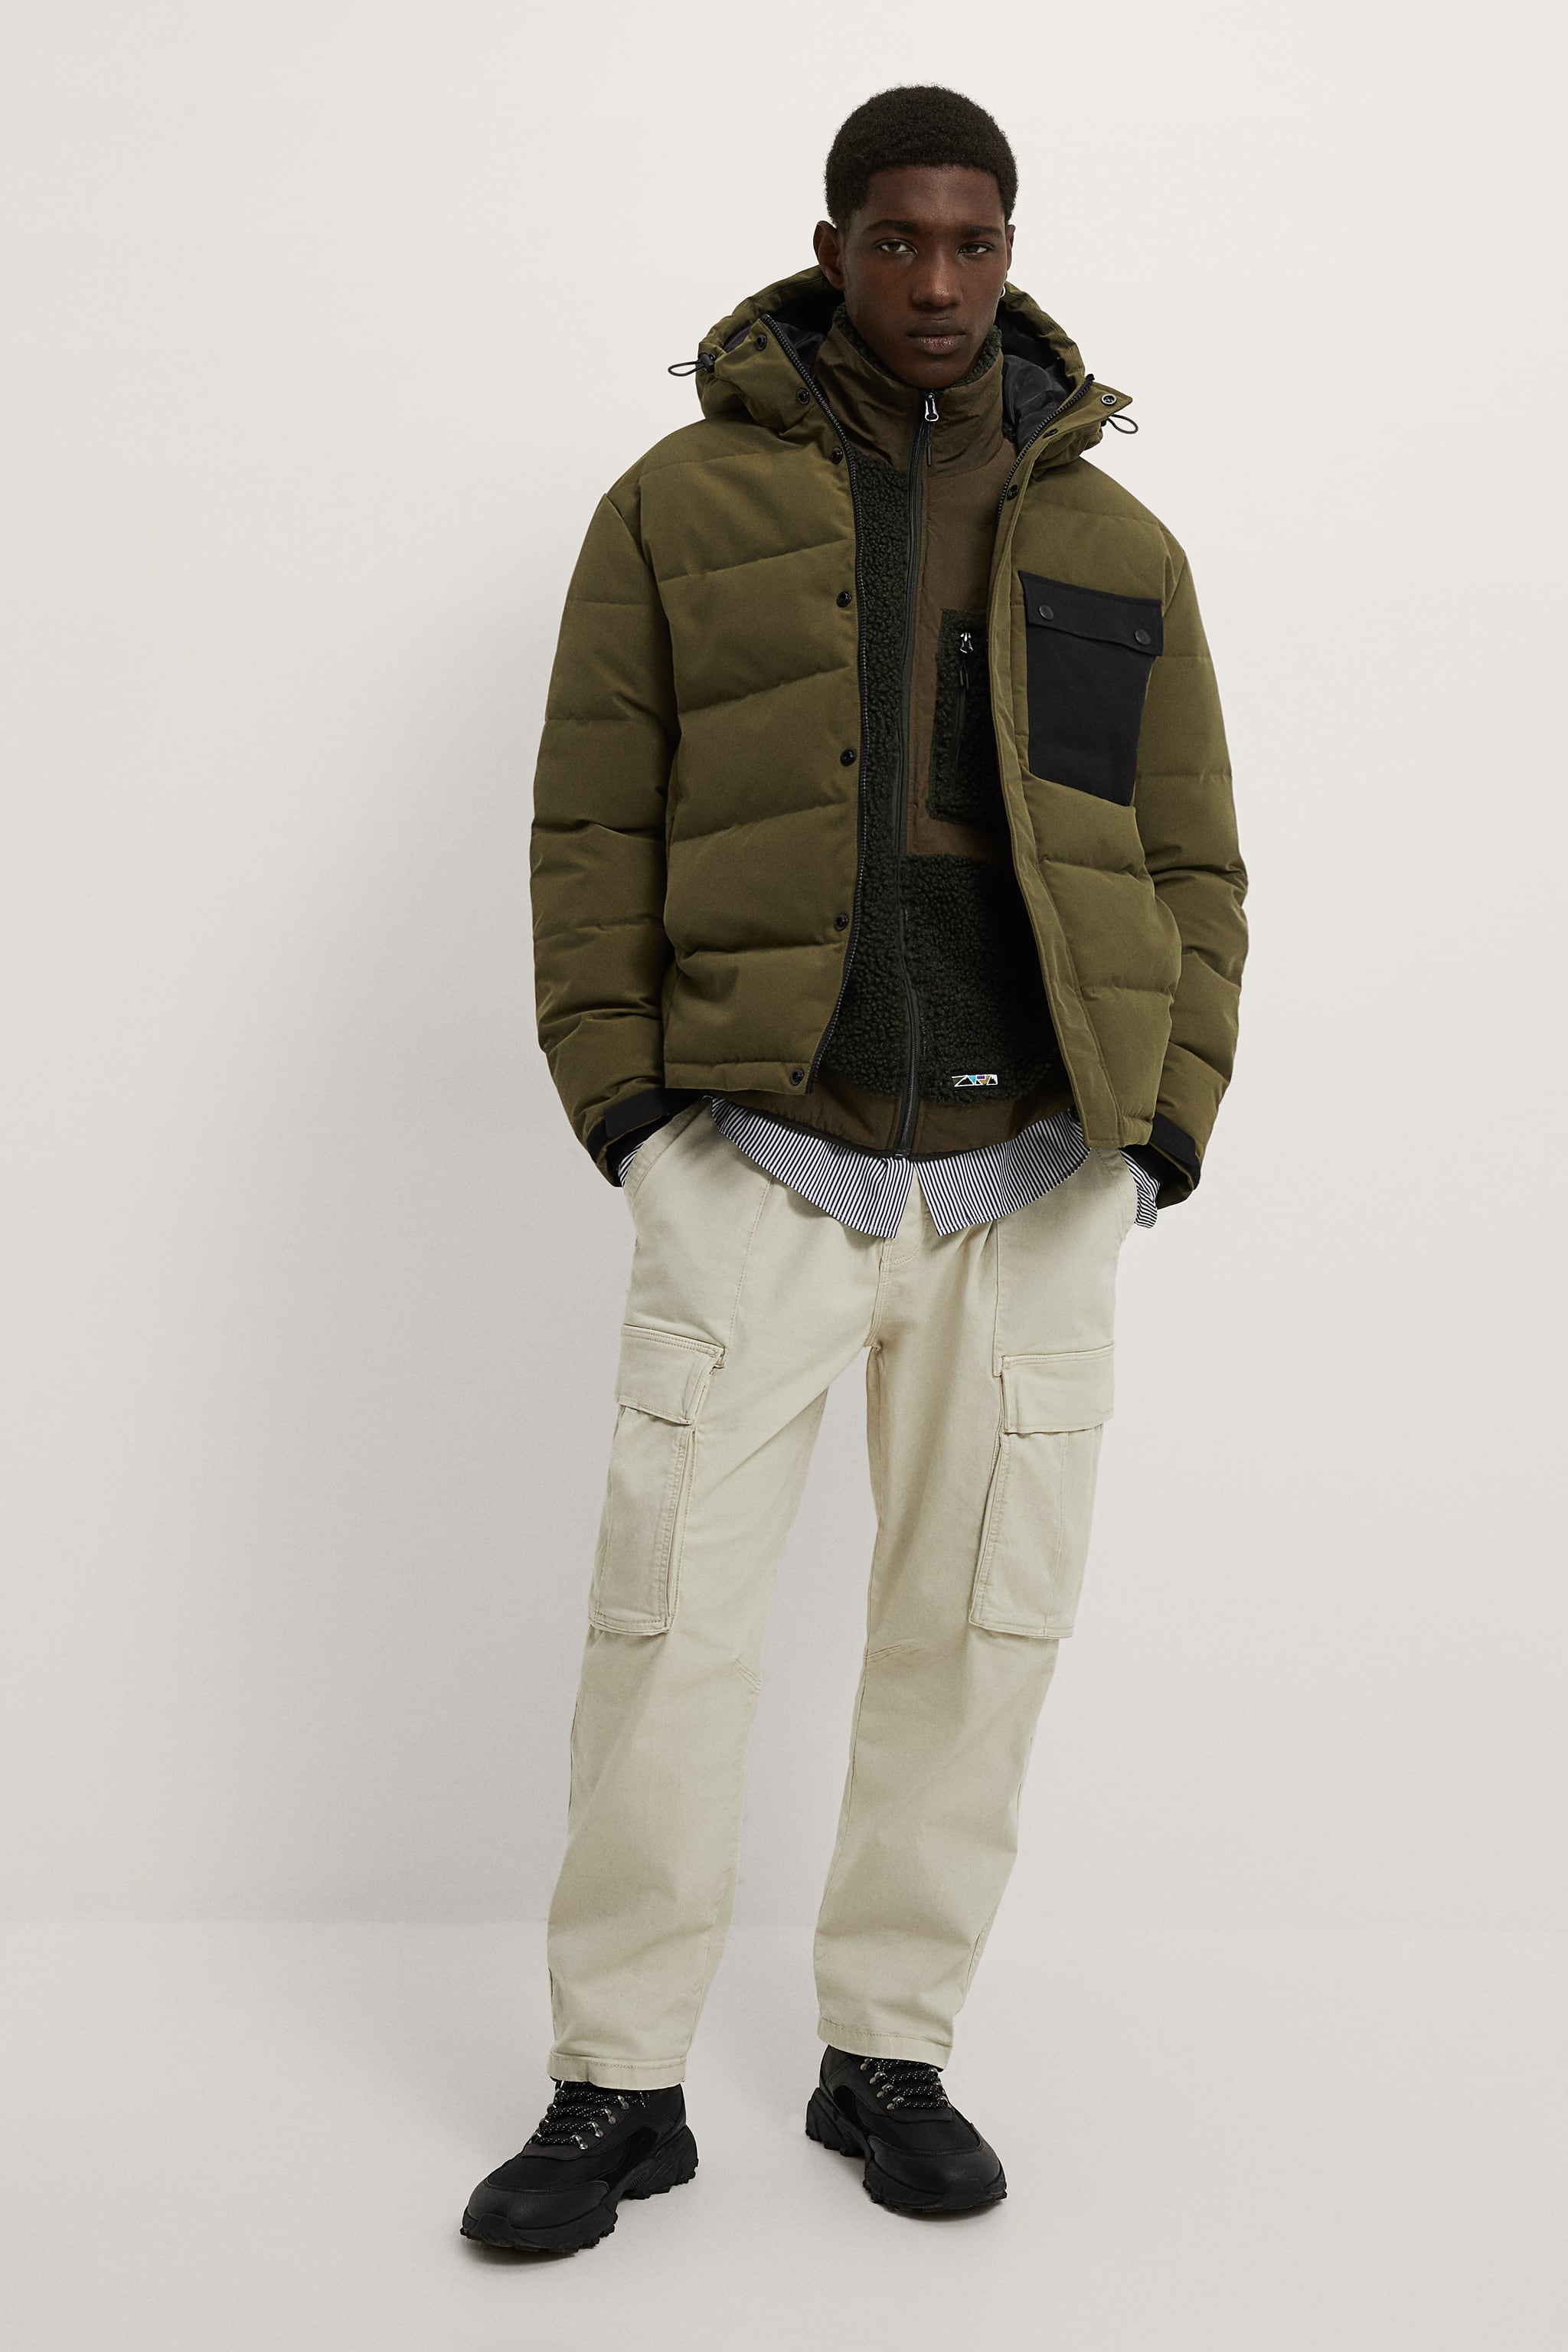 자라 Zara COMBINATION POCKET PUFFER JACKET,Khaki